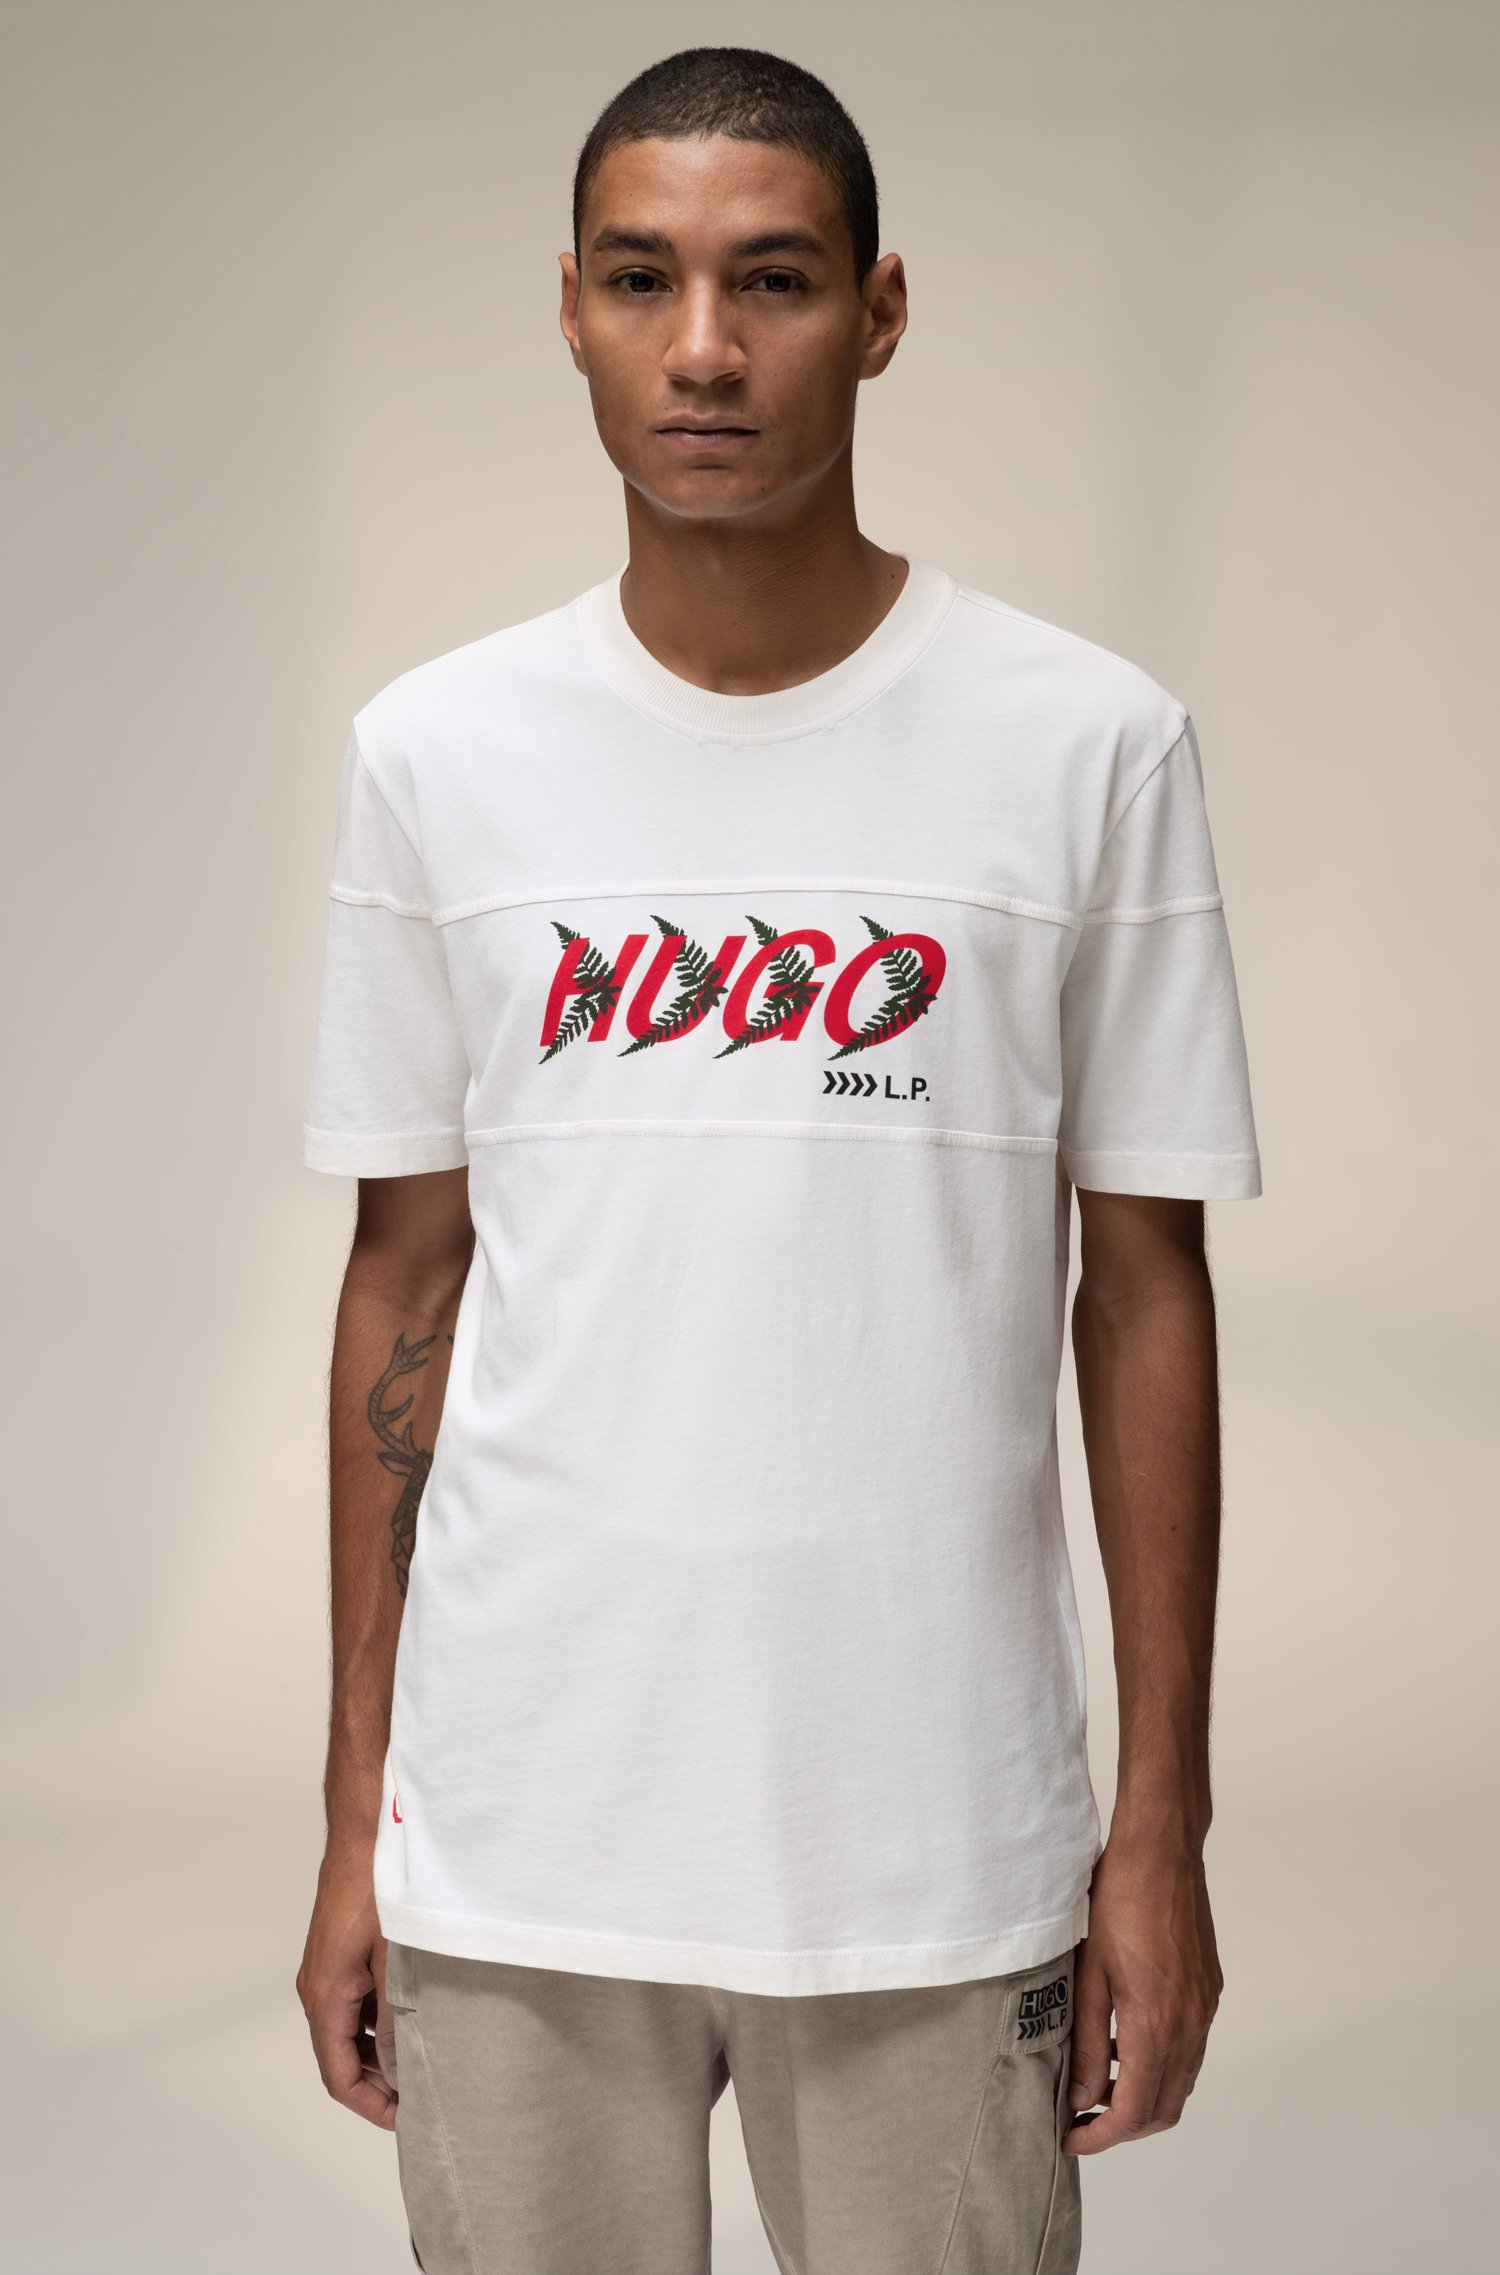 Unisex T-shirt in cotton with forest-inspired logo motif, White